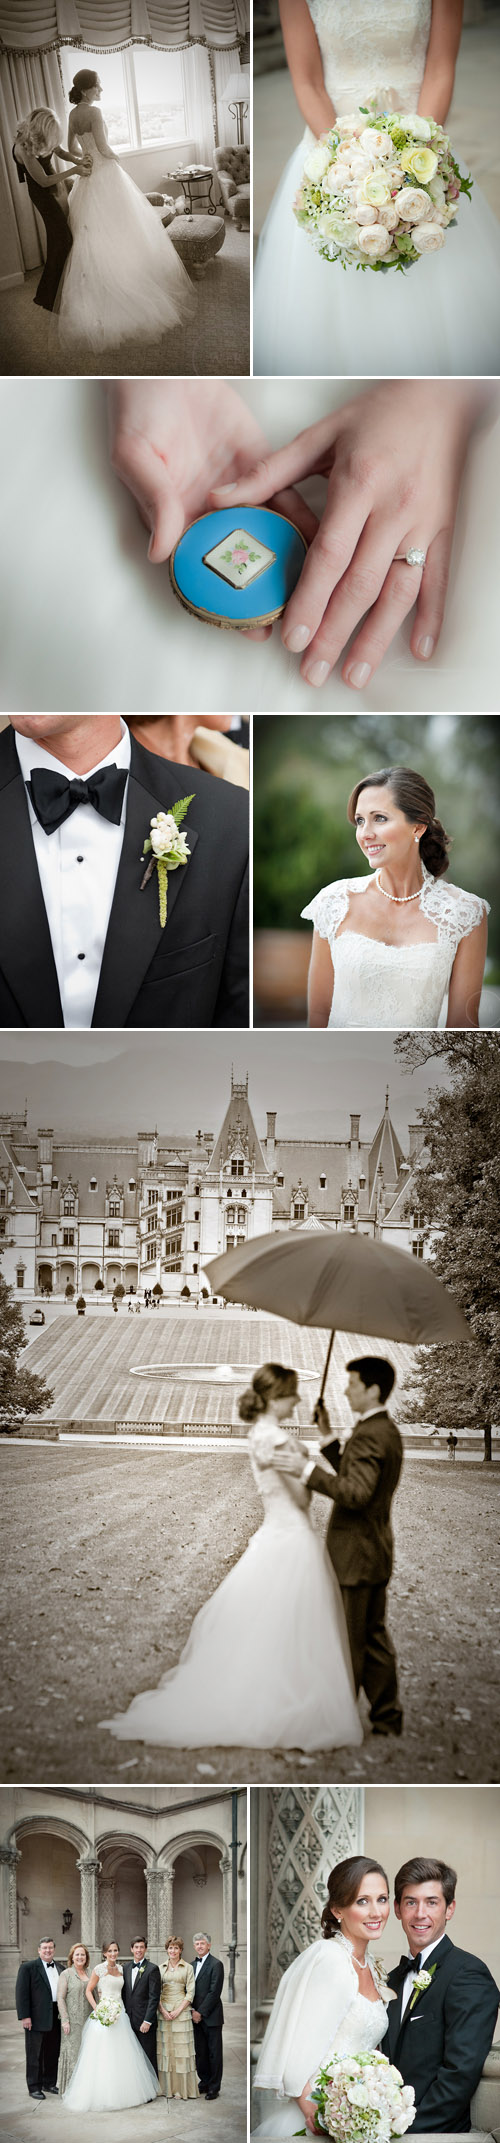 Biltmore Estate, Asheville, North Carolina fairytale real wedding, images by Woodward + Rick